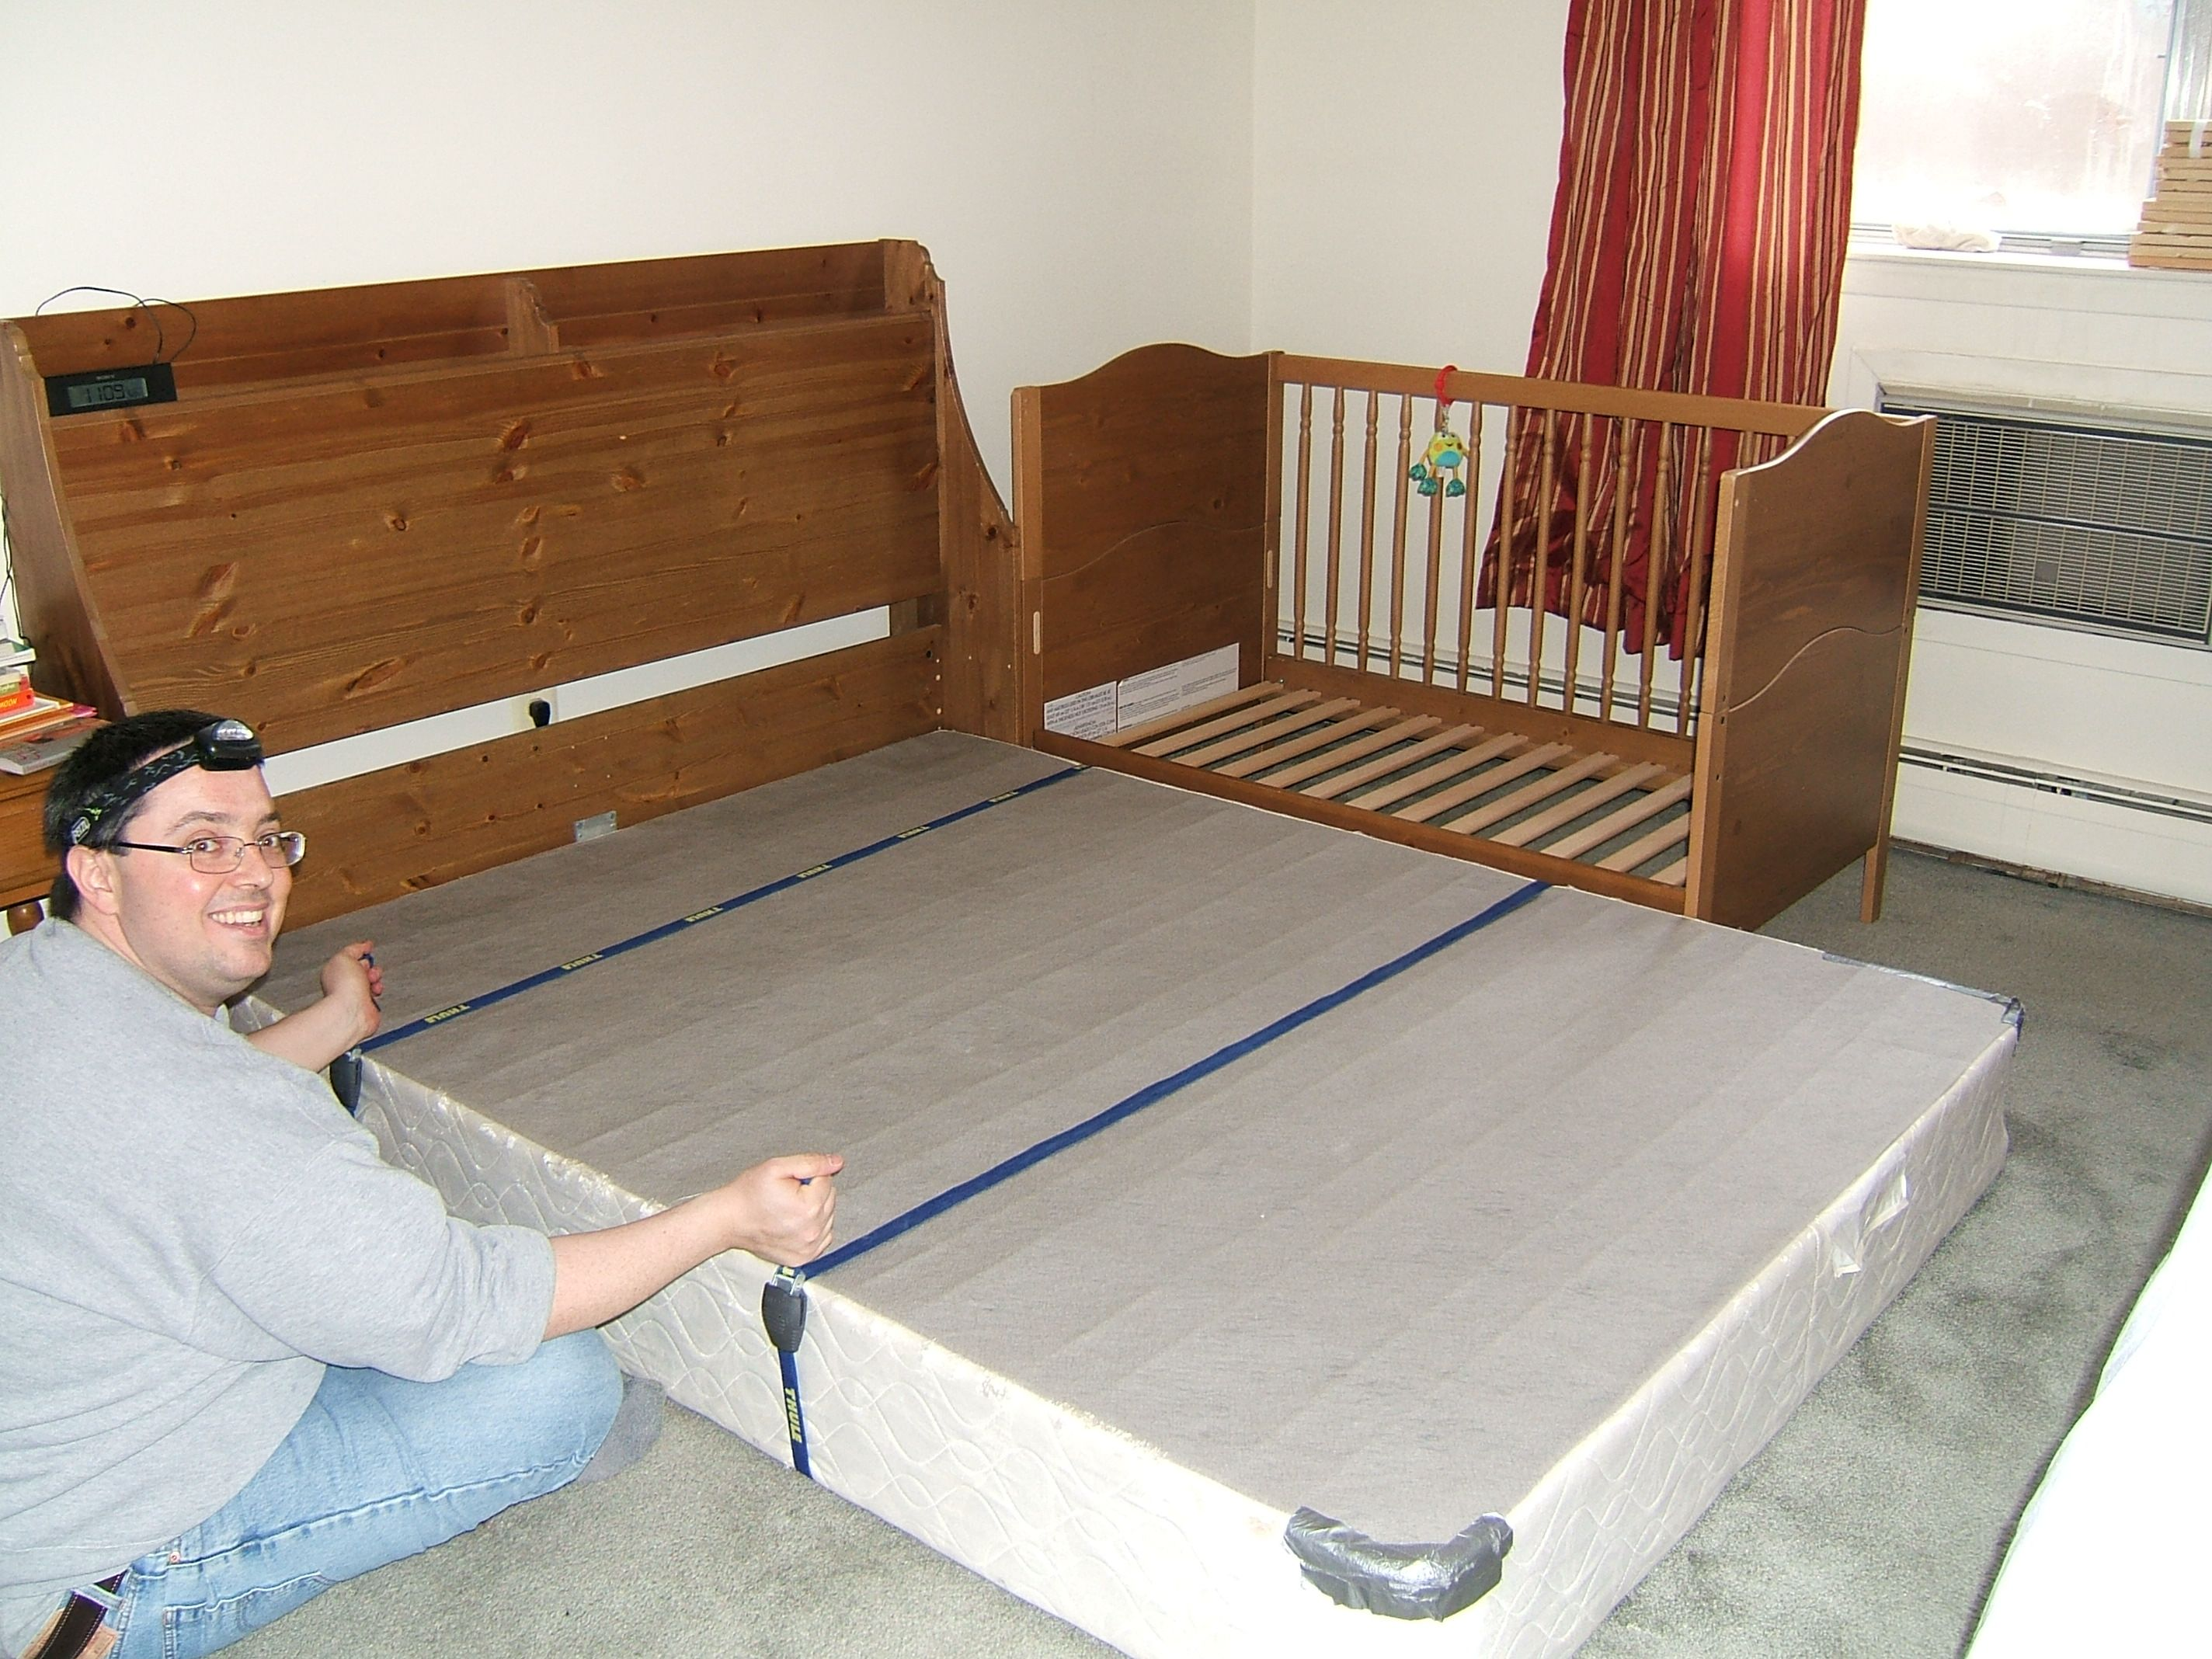 Baby bed co sleeper - Crib Side Bed First Take One Side Off The Crib Our Crib Can Also Be Co Sleepingsidecarbaby